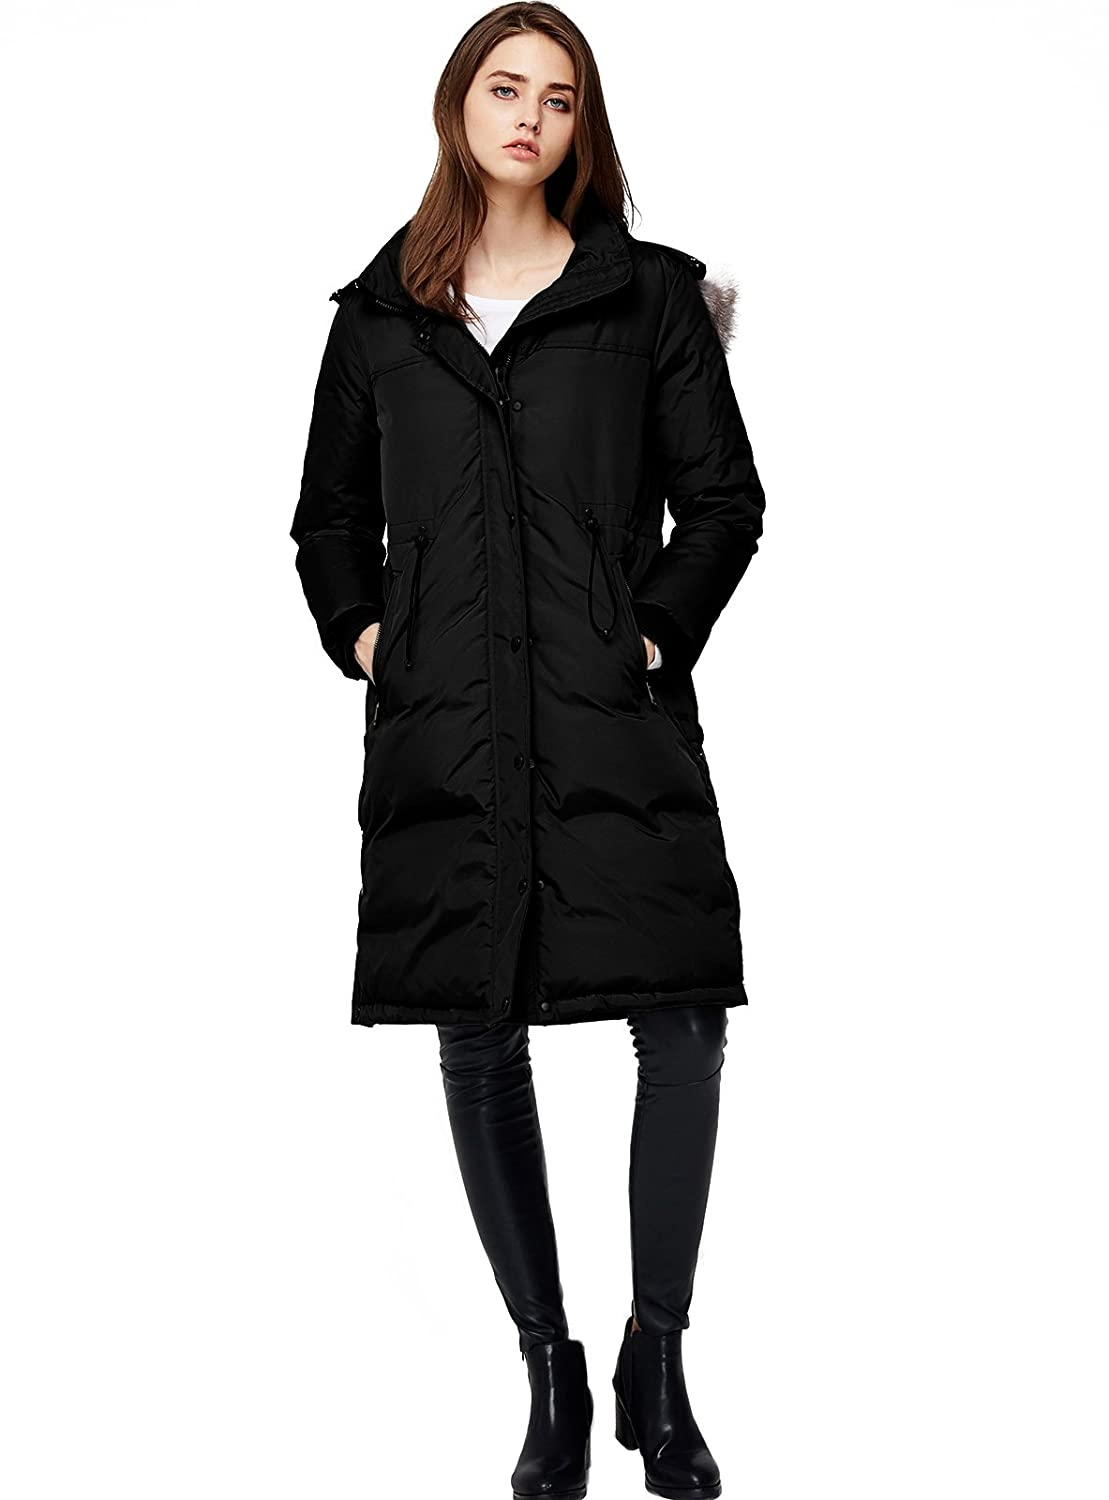 398ff51cb309 Outershell  100% Polyester  Lining  100% Polyester Zipper closure. Our size  is different from amazon